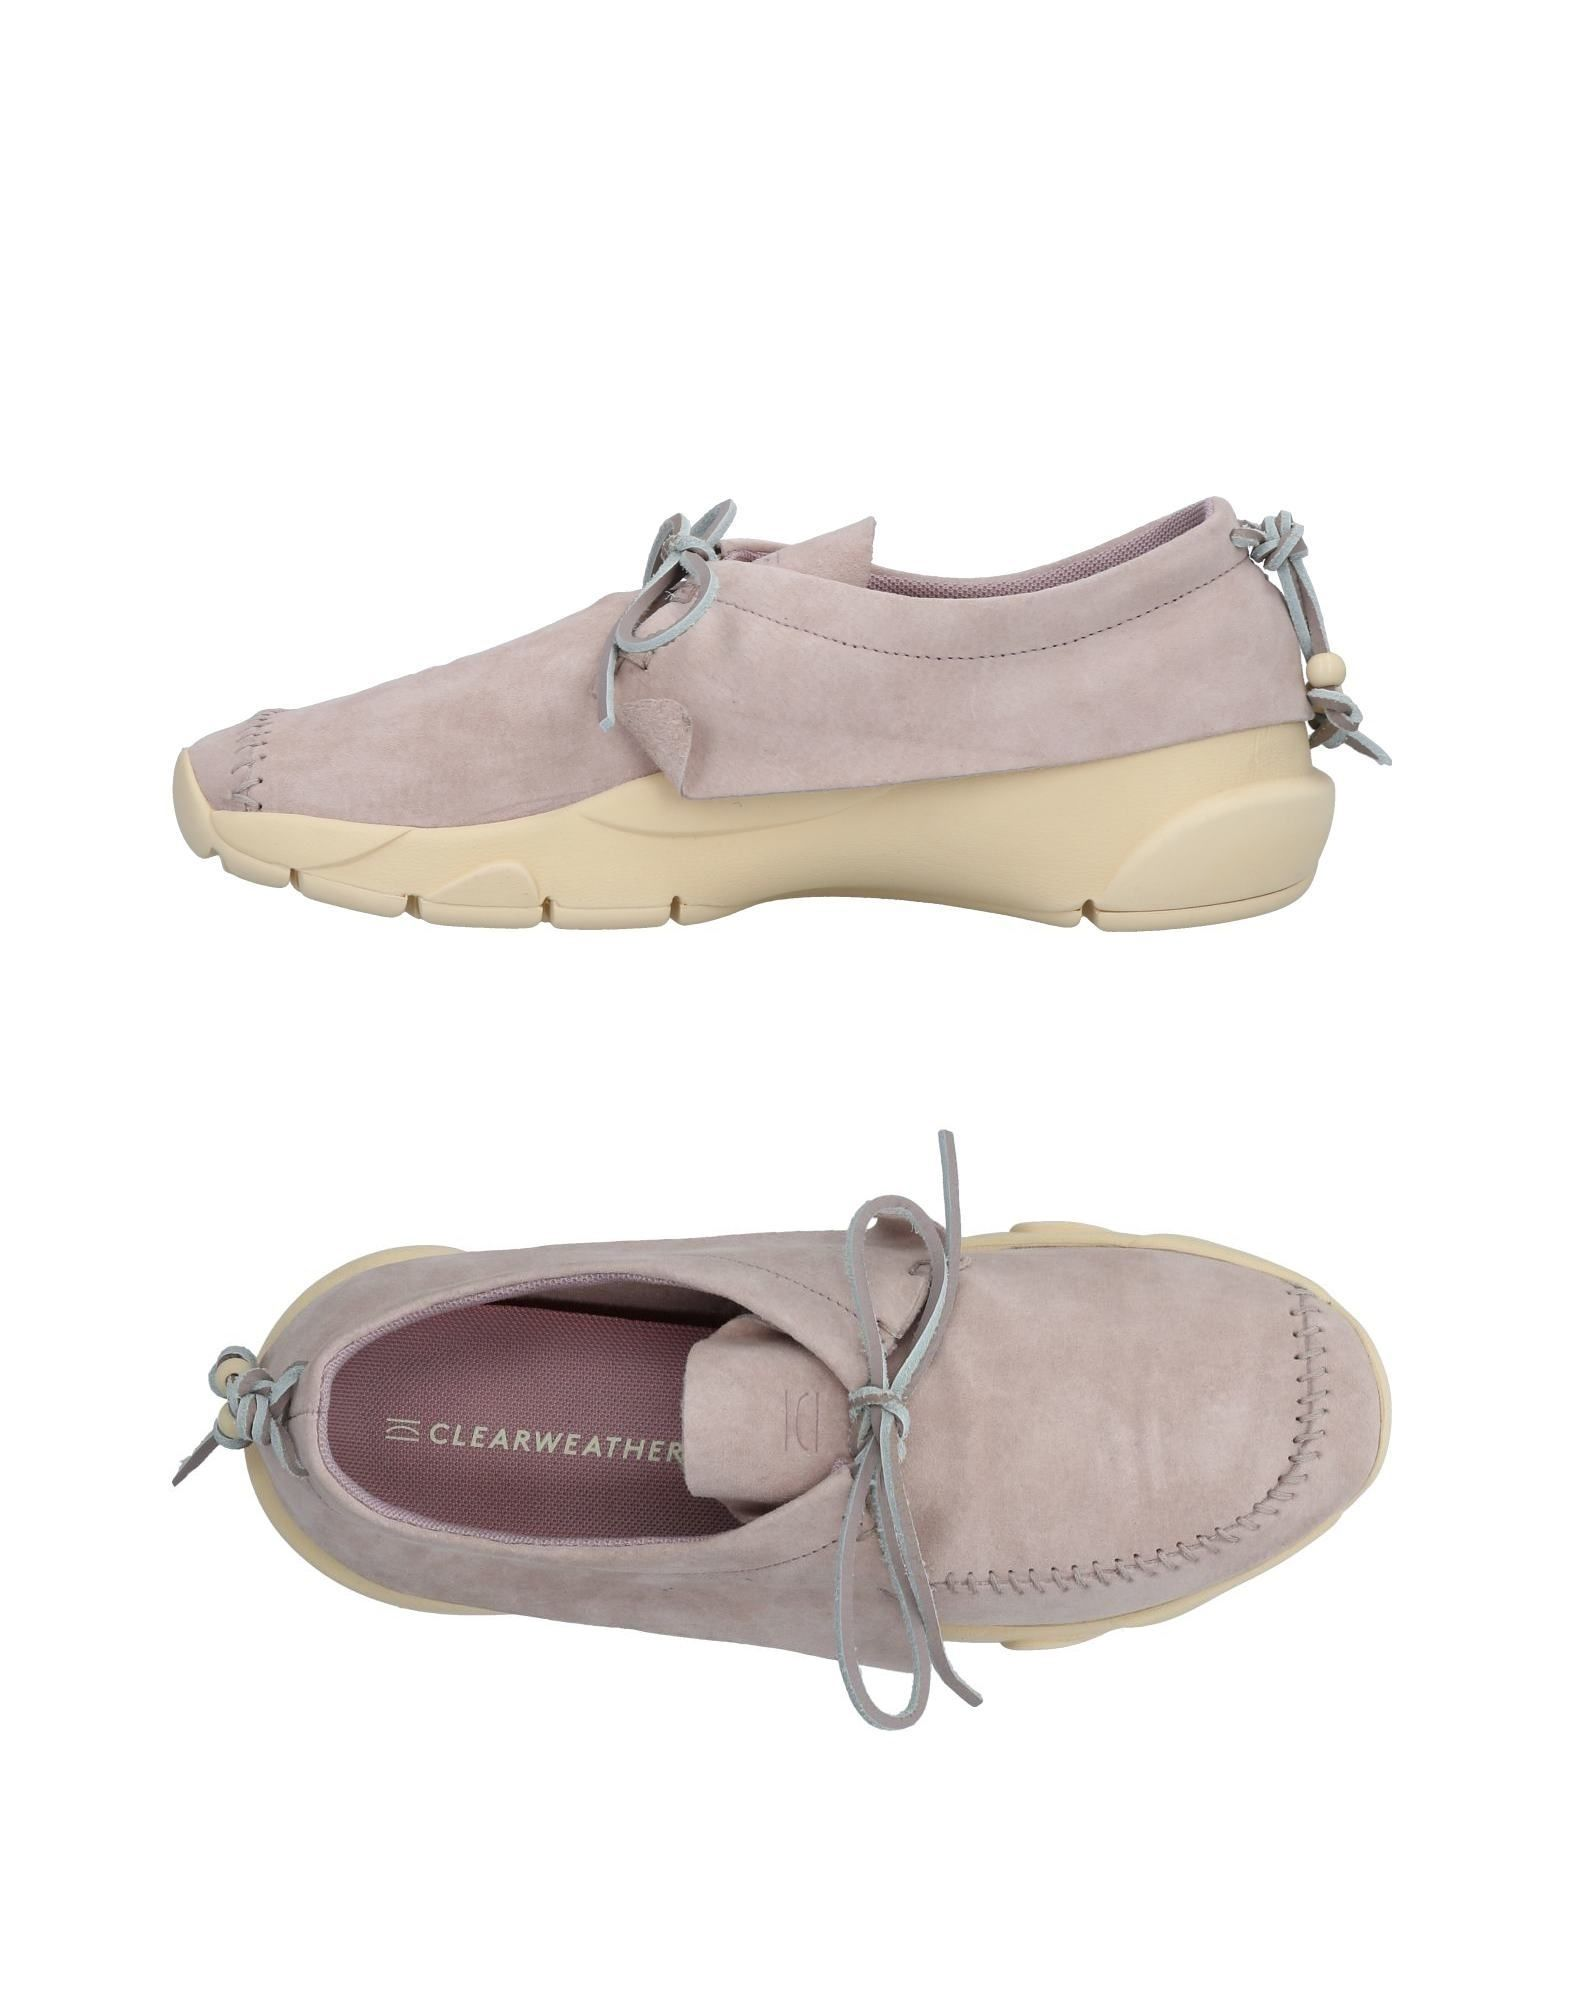 CLEAR WEATHER Sneakers in Dove Grey